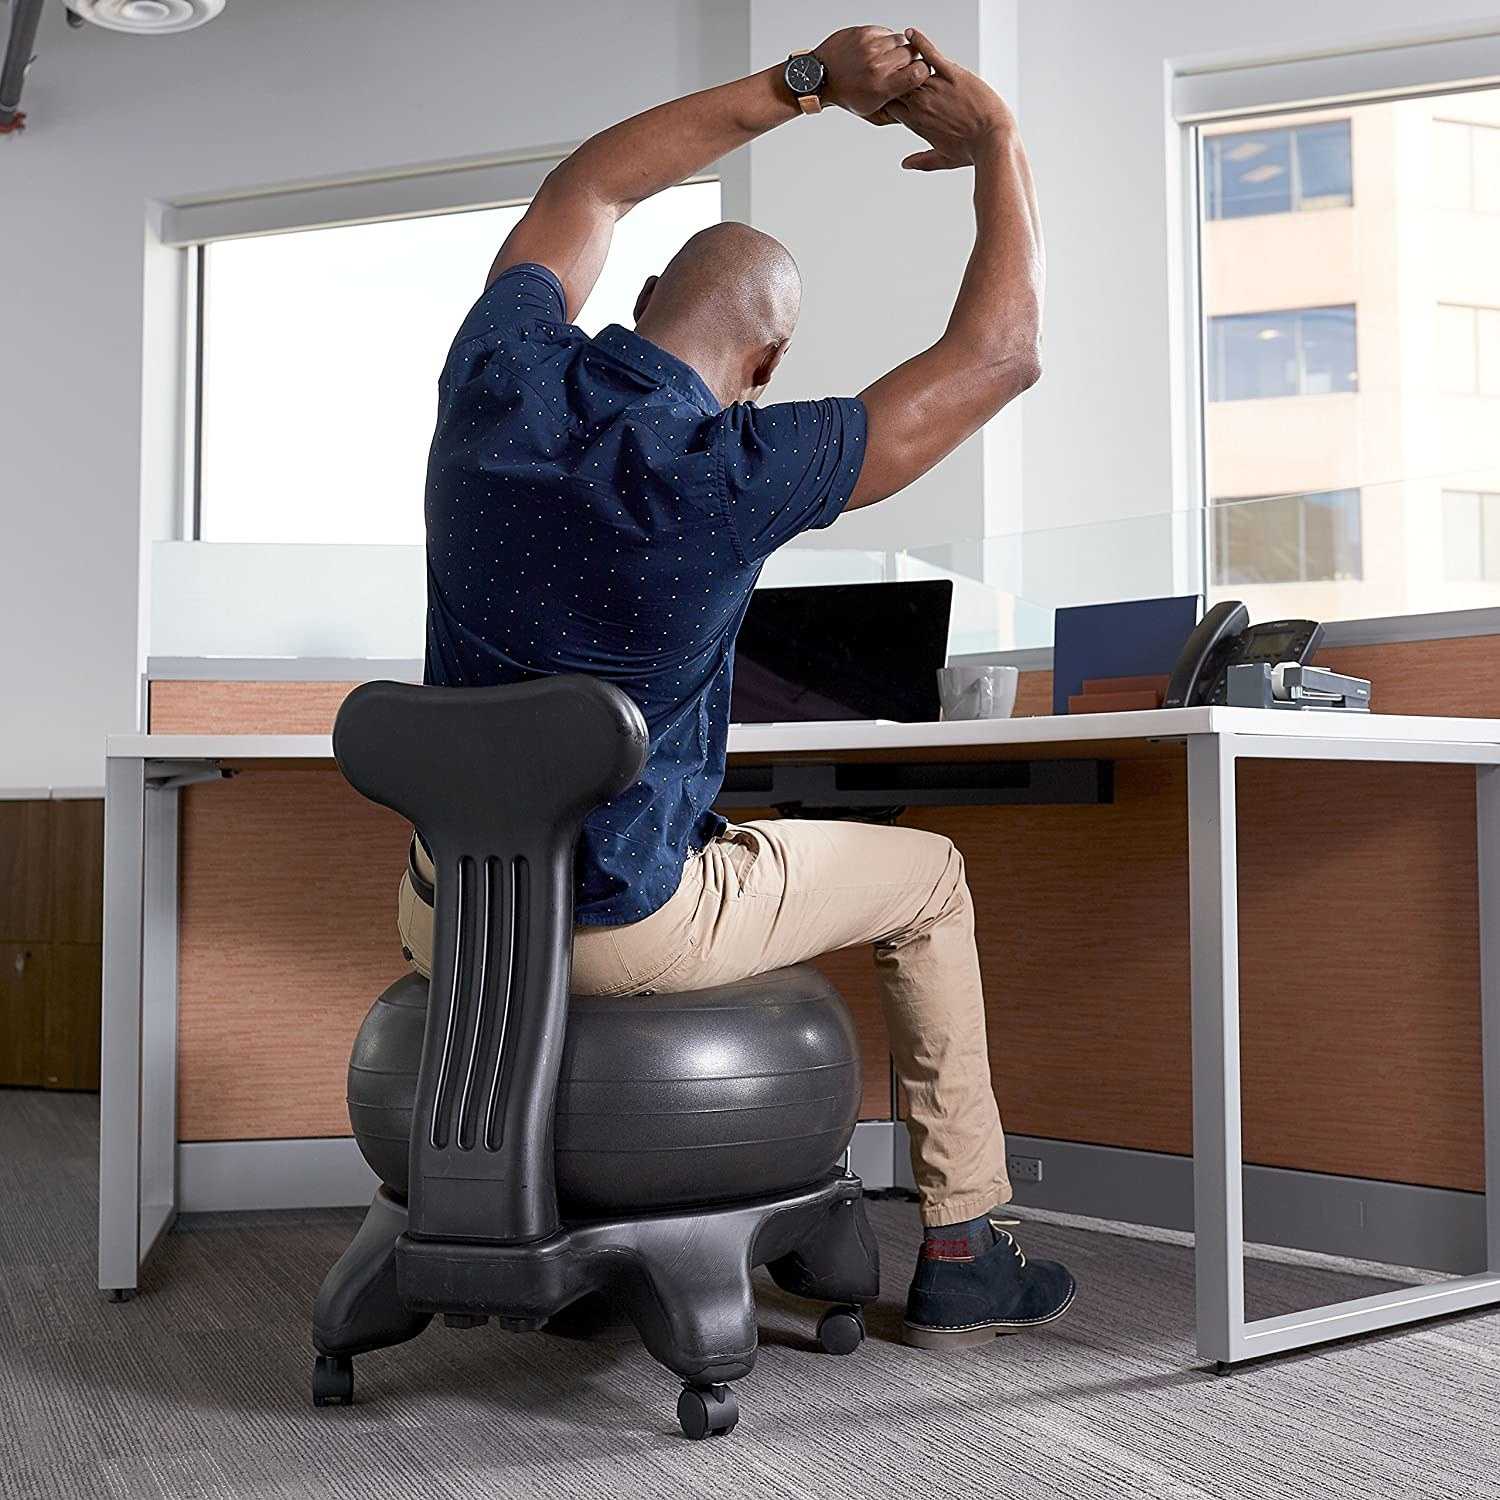 A person stretching in front of their desk while sitting on the ball chair.